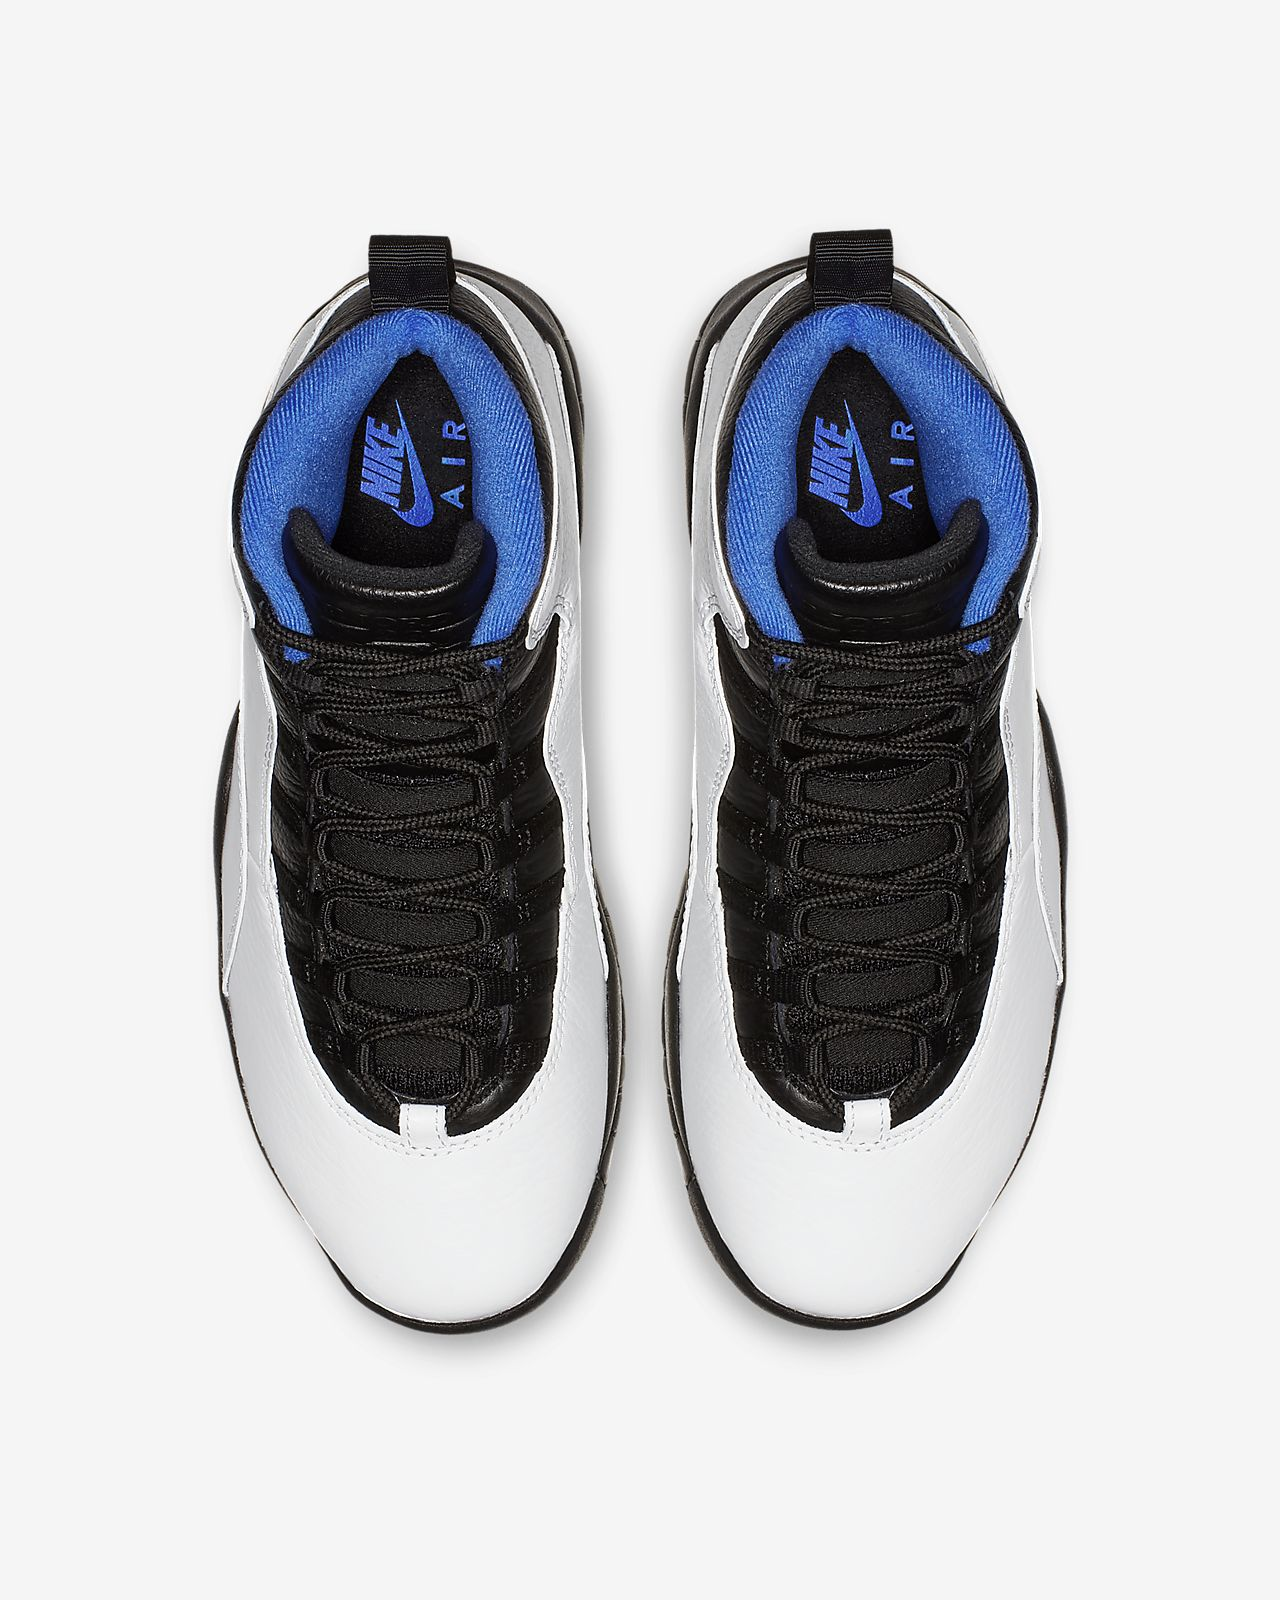 c5edbcf5feea Air Jordan 10 Retro Men s Shoe. Nike.com